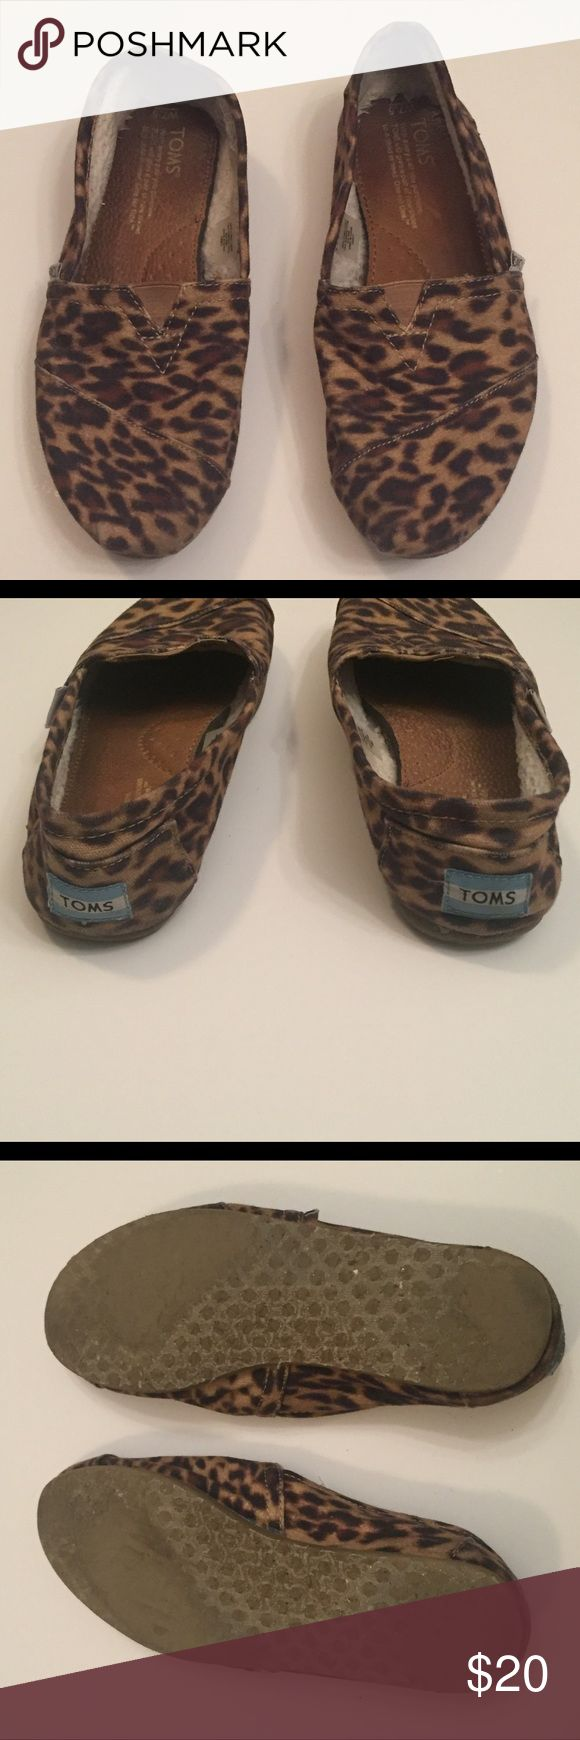 Leopard Toms Leopard Toms in used condition. No rips but wear on interior and sole as shown. TOMS Shoes Flats & Loafers